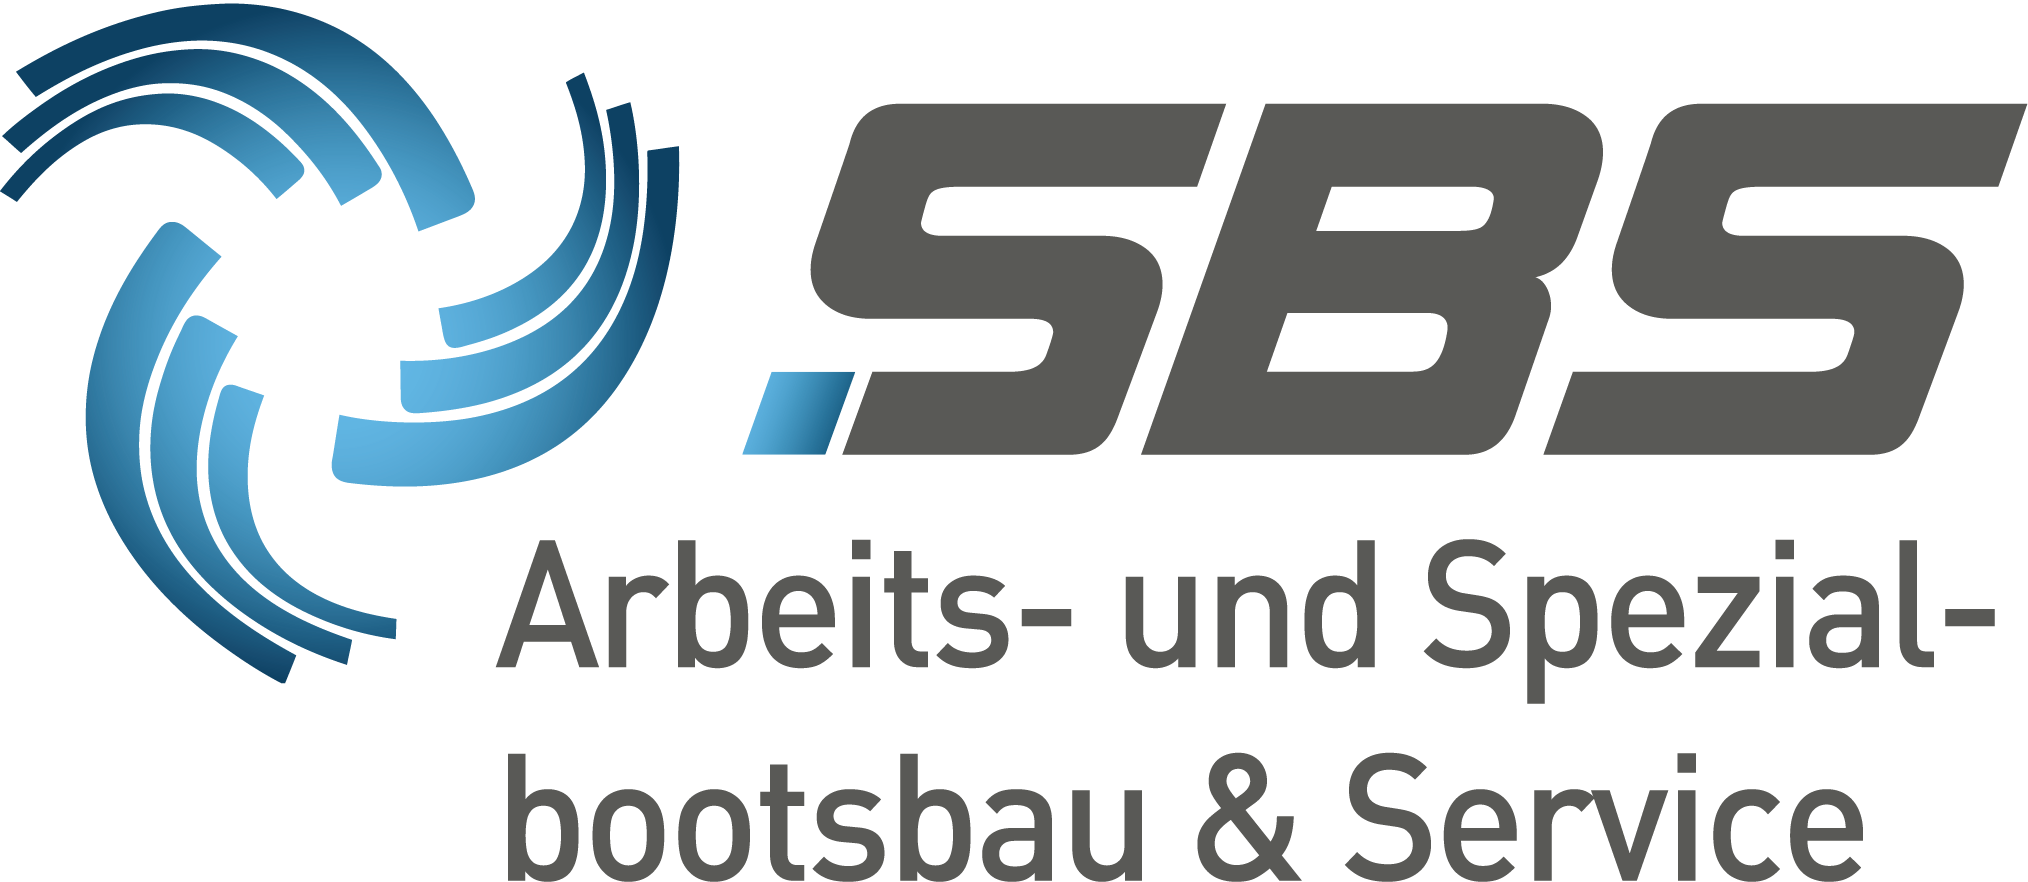 SBS Boote